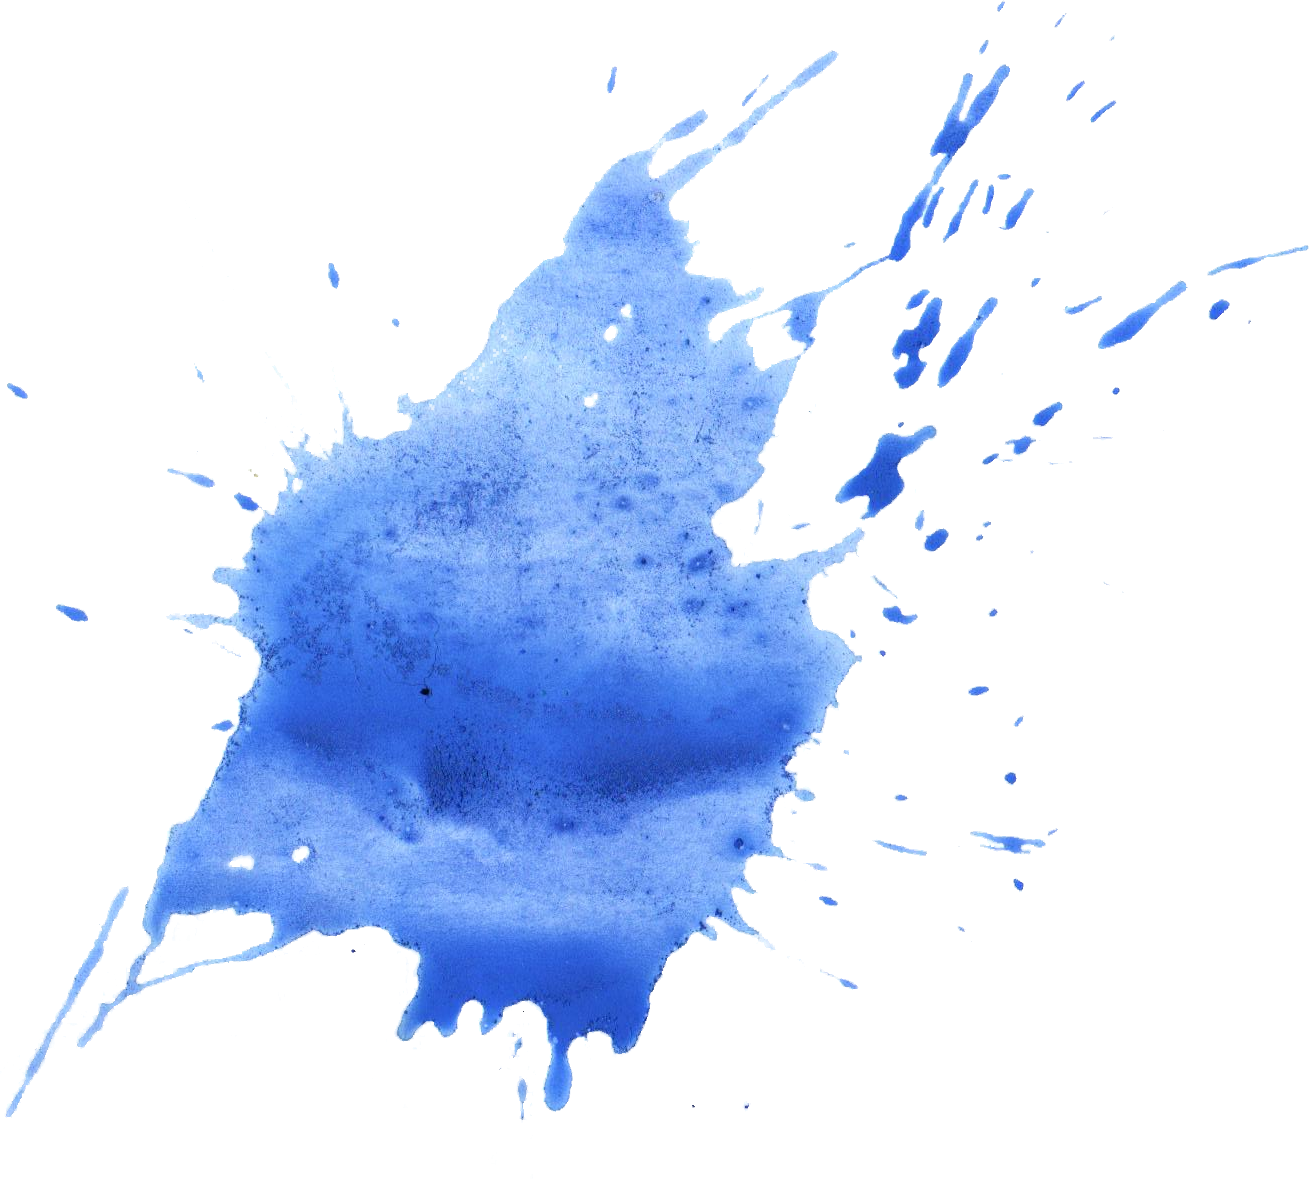 Blue splatter png. Watercolor transparent onlygfx